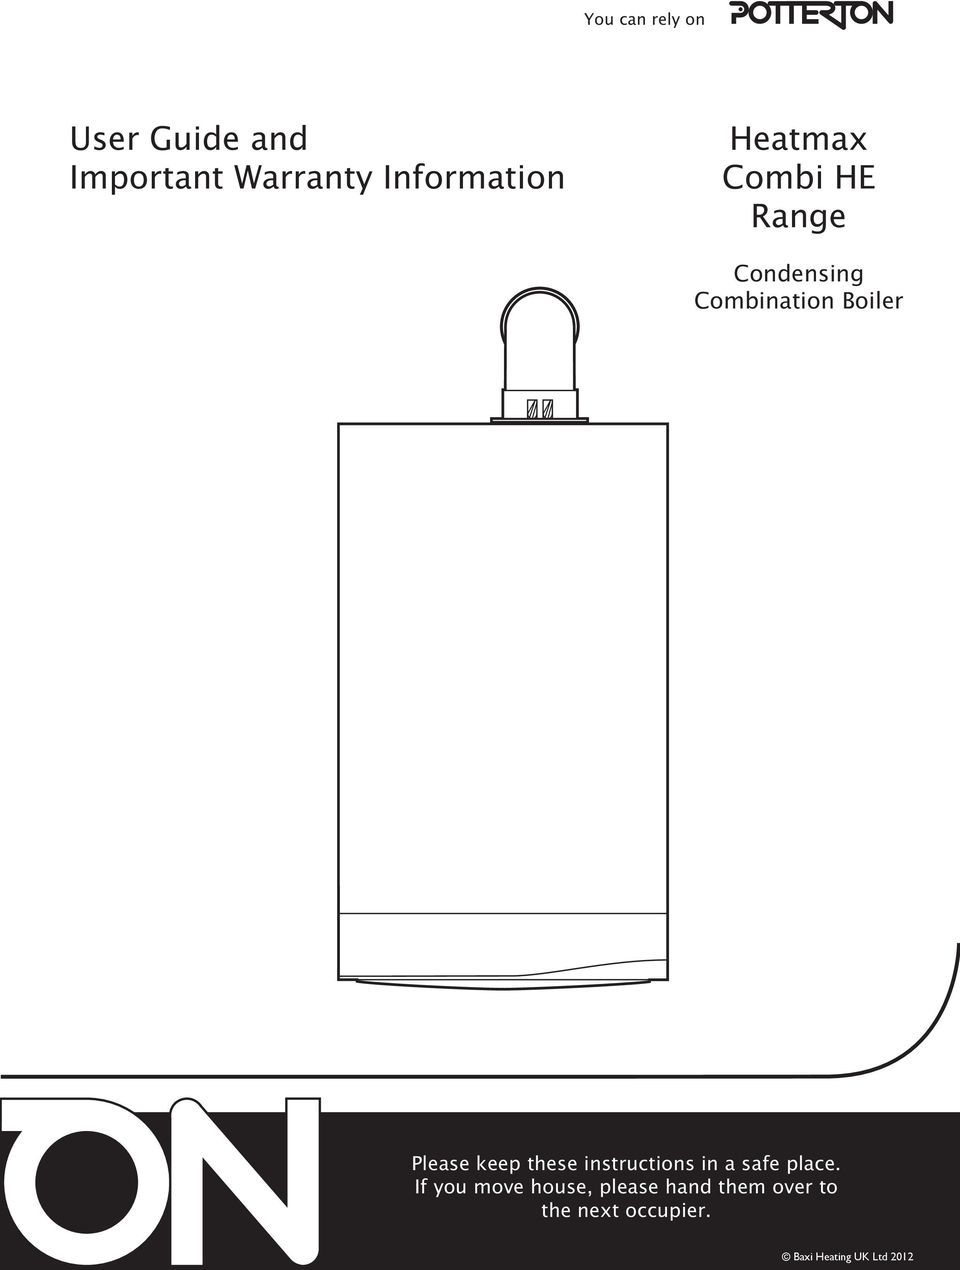 User Guide and Important Warranty Information. Heatmax Combi HE ...